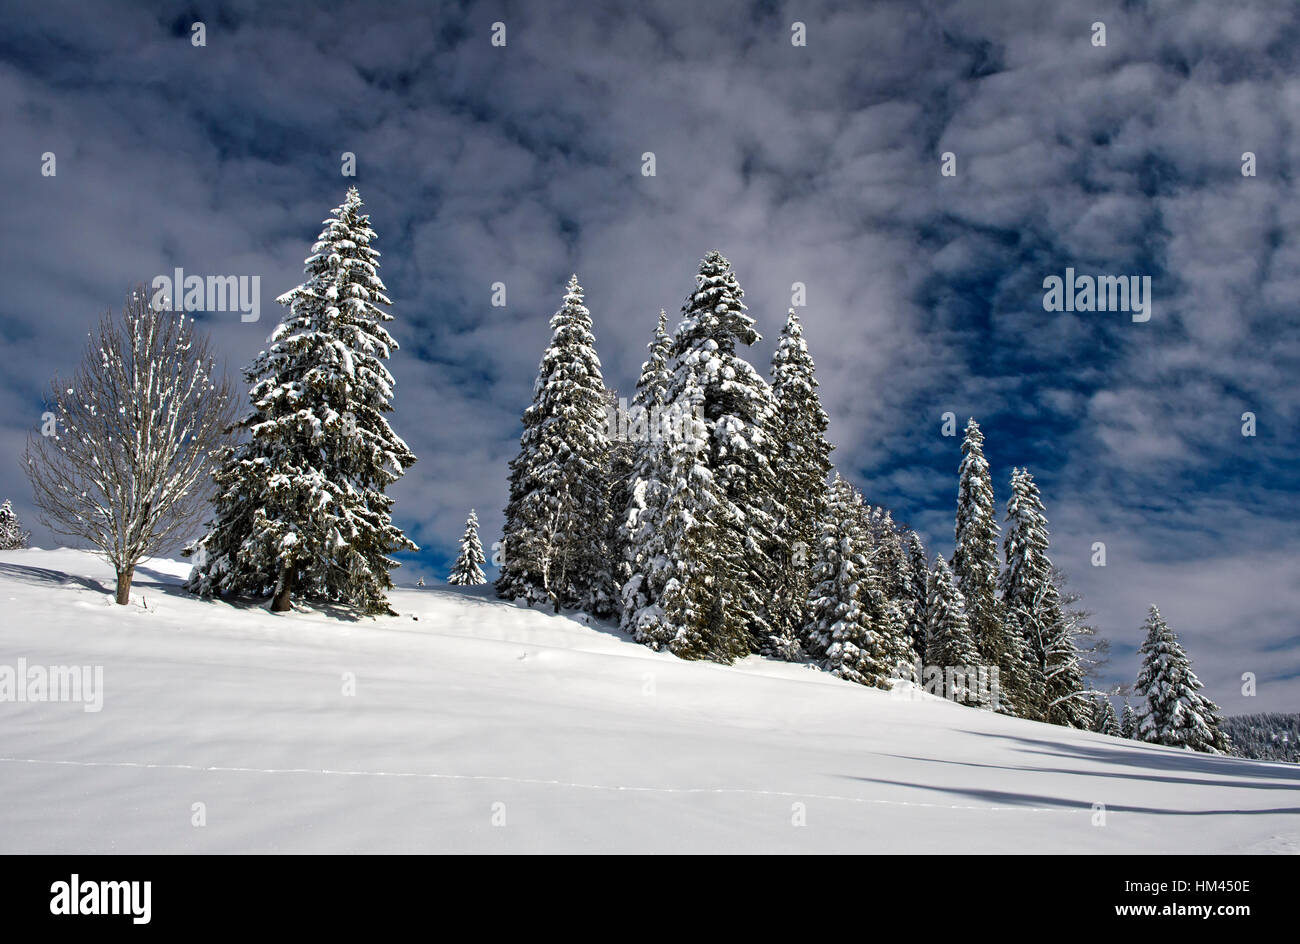 Winter landscape with snow-covered spruces in the Swiss Jura mountain range near Saint-Cergue, Vaud, Switzerland - Stock Image